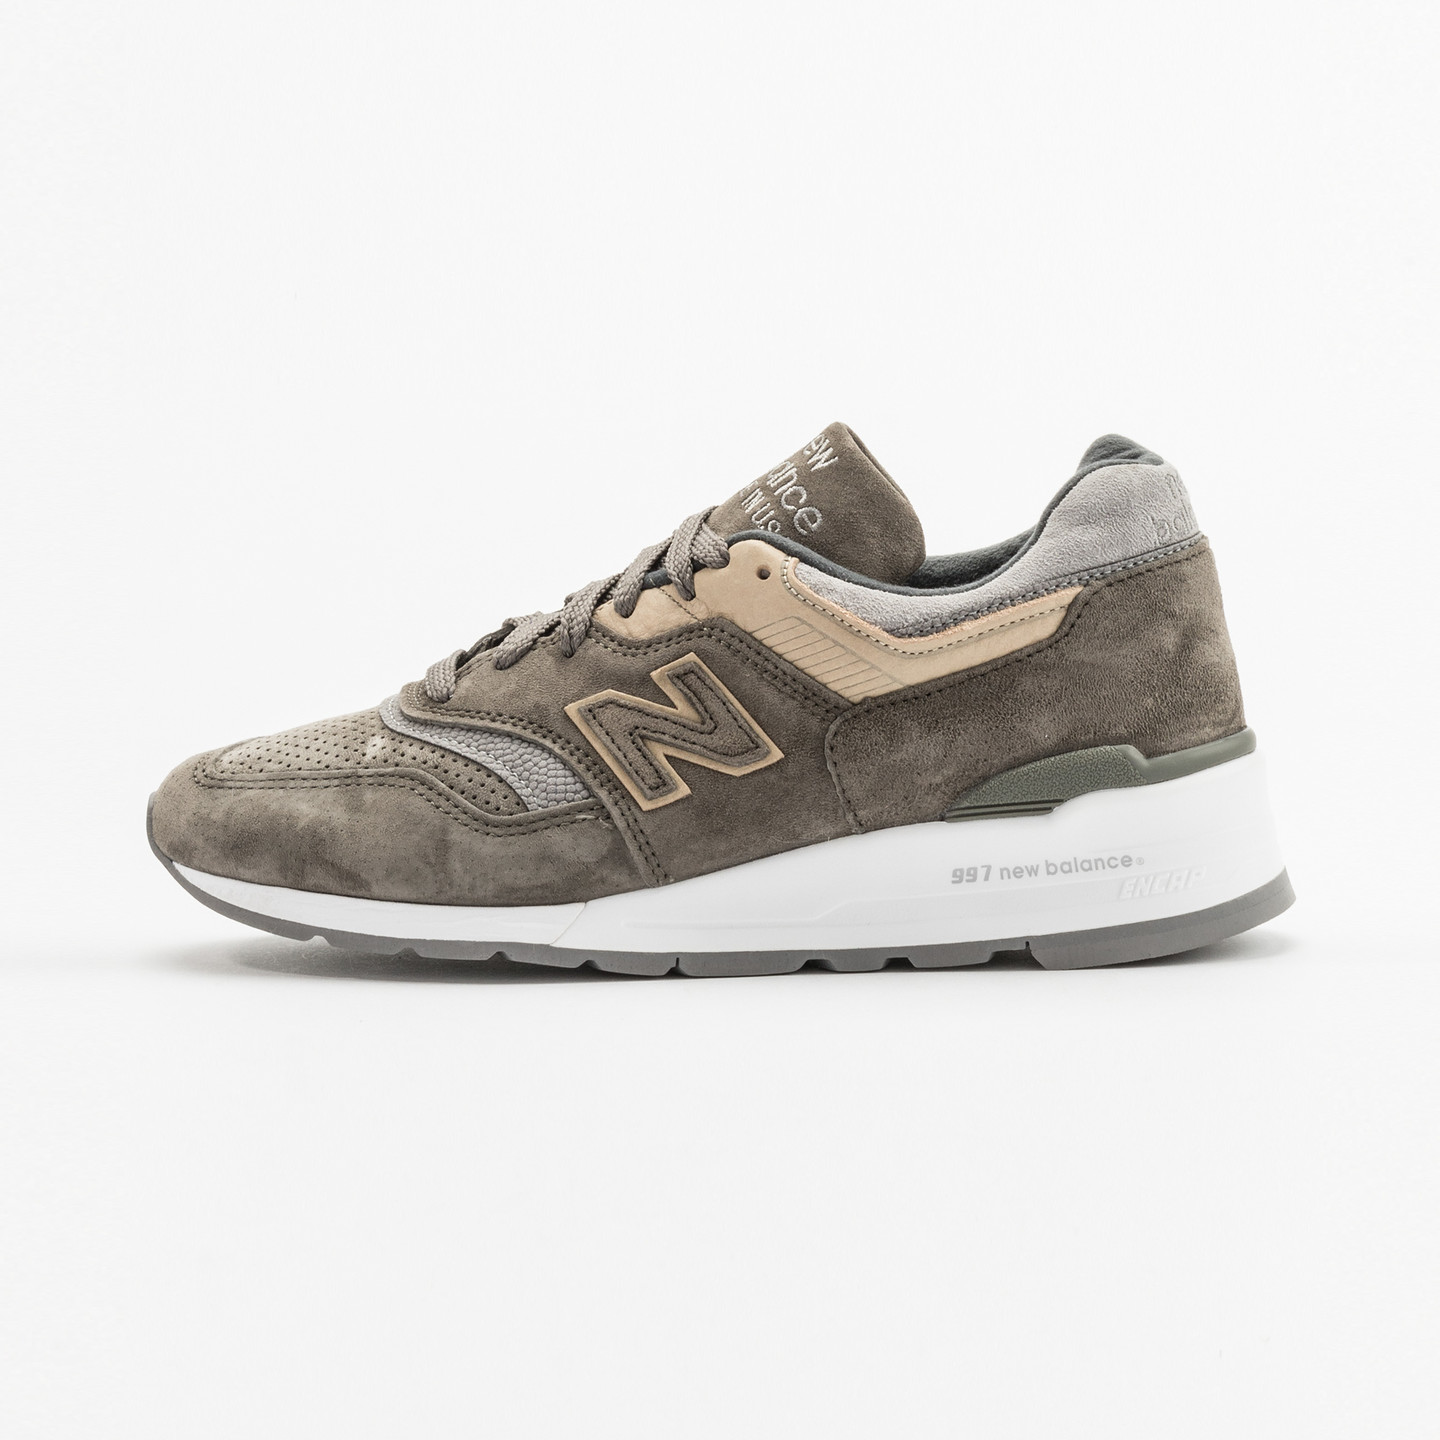 New Balance M997 - Made in USA Military Green / Beige M997FGG